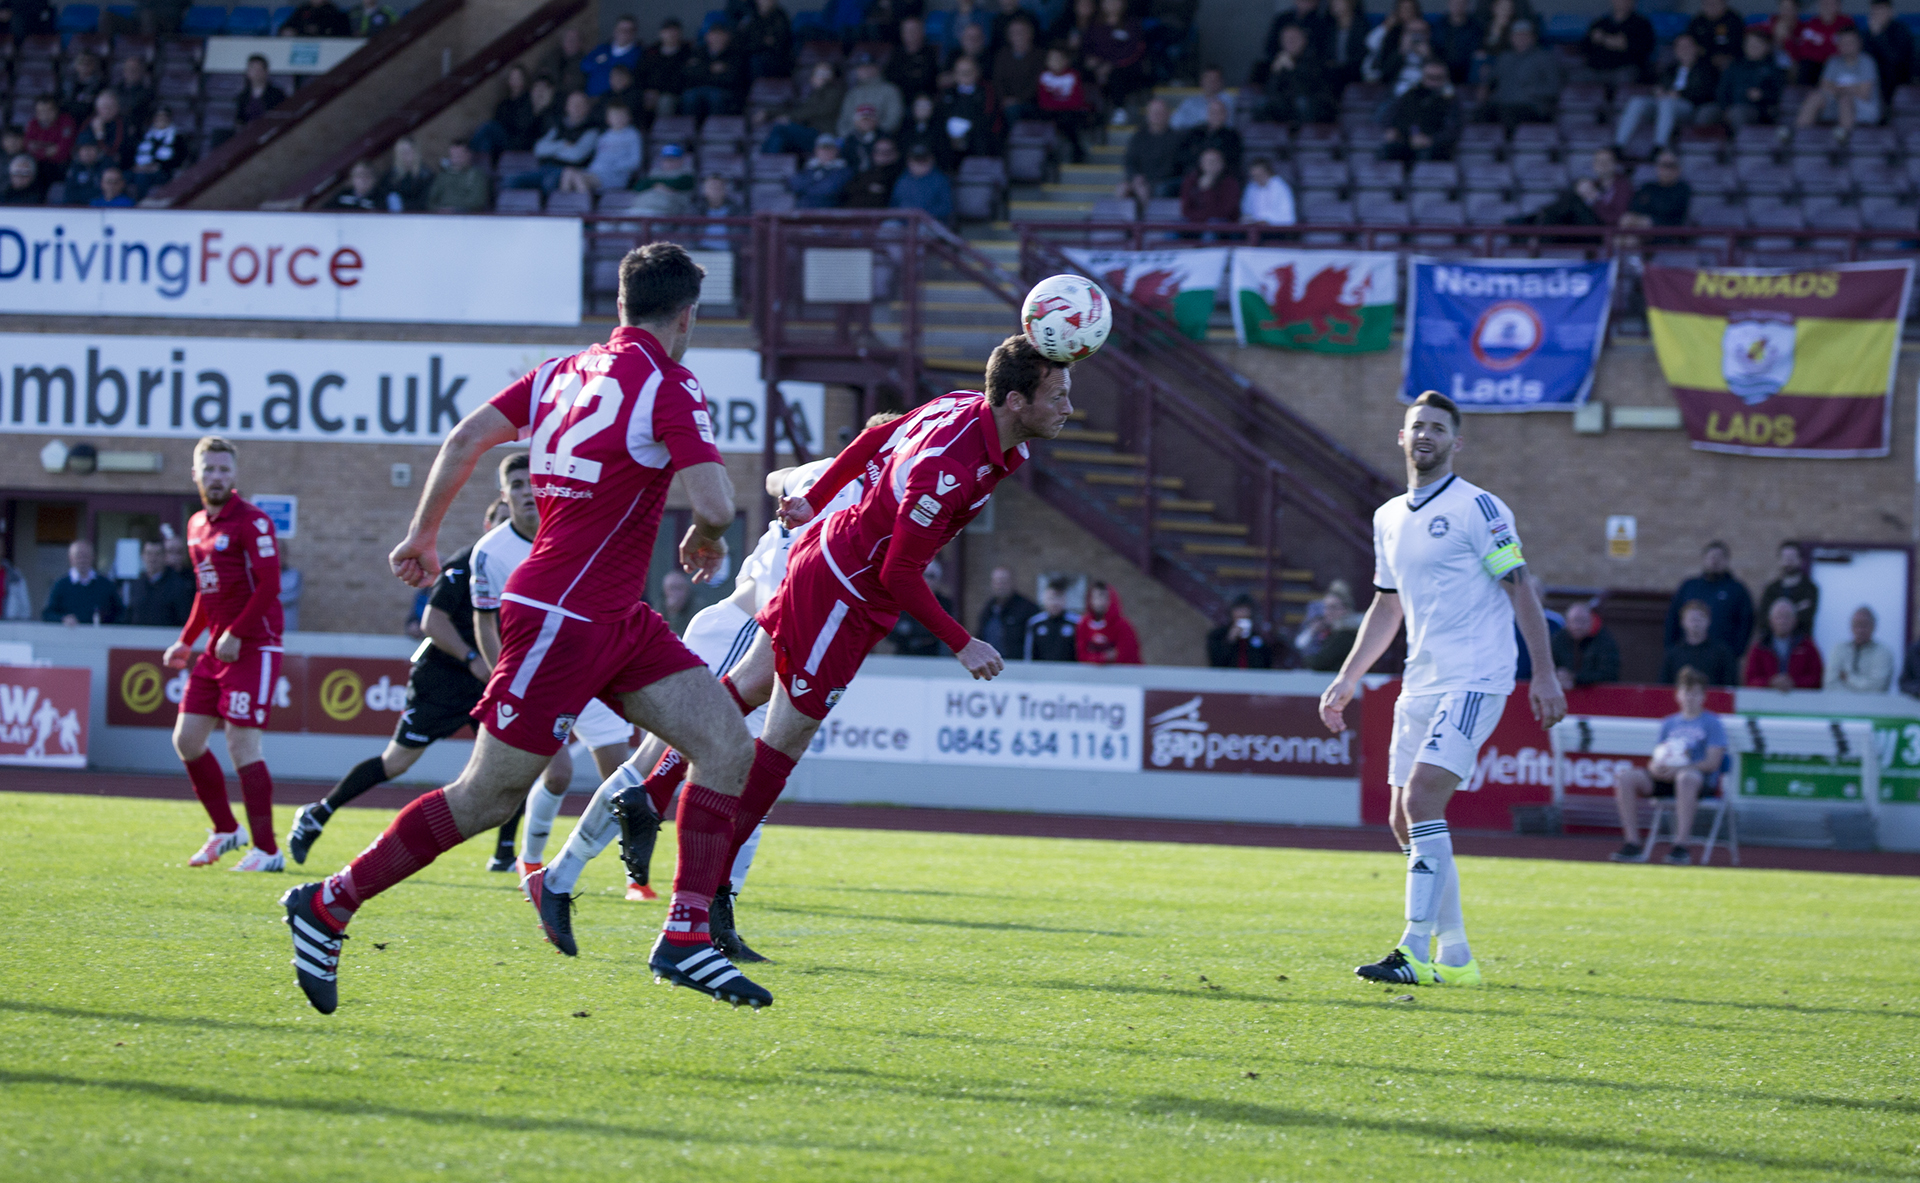 Matty Williams is unable to get his second half header on target - © NCM Media